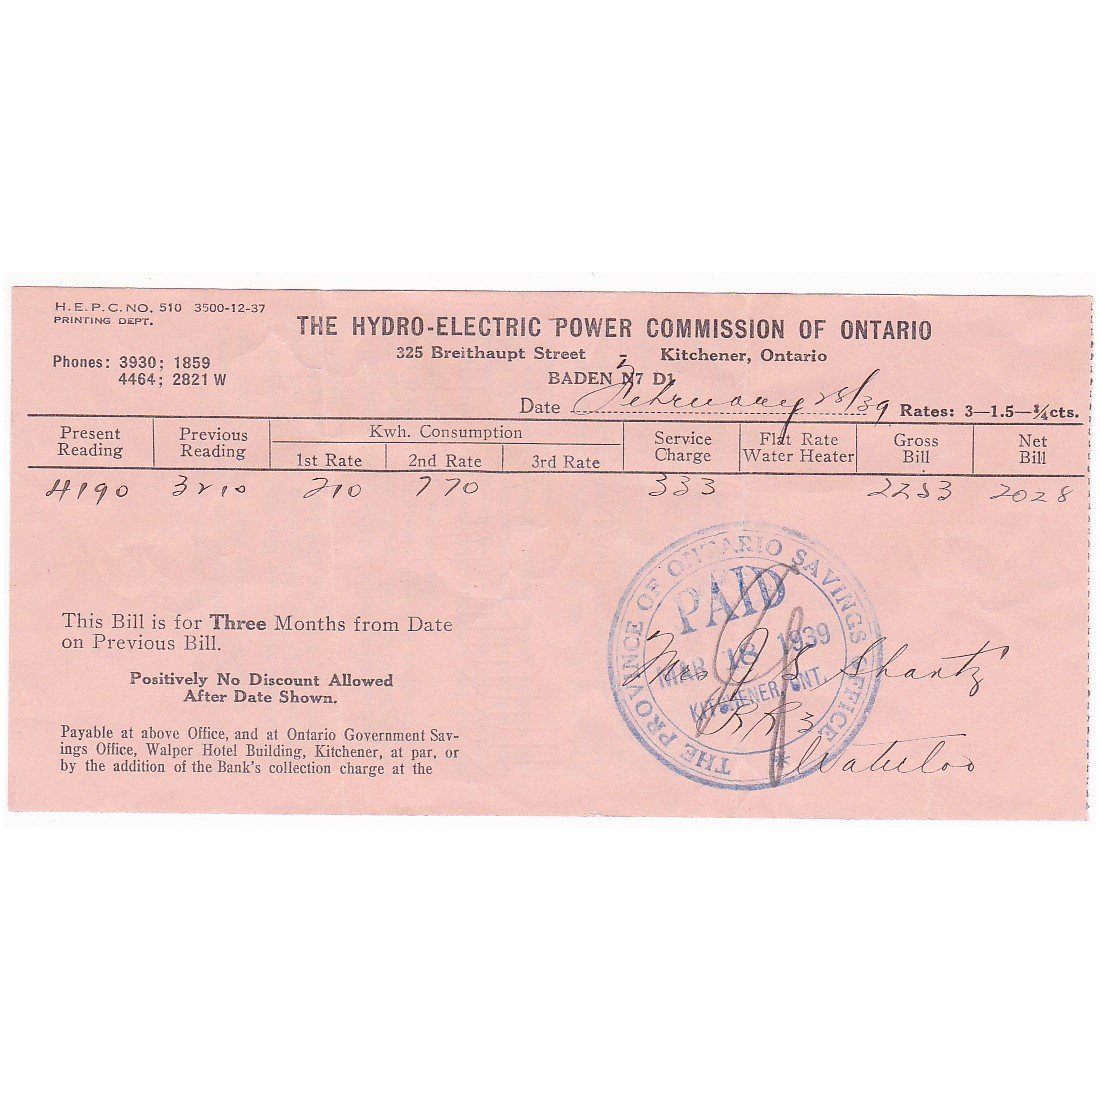 VINTAGE 1939 WW2 HYDRO ELECTRIC COMMISSION OF ONTARIO RECEIPT